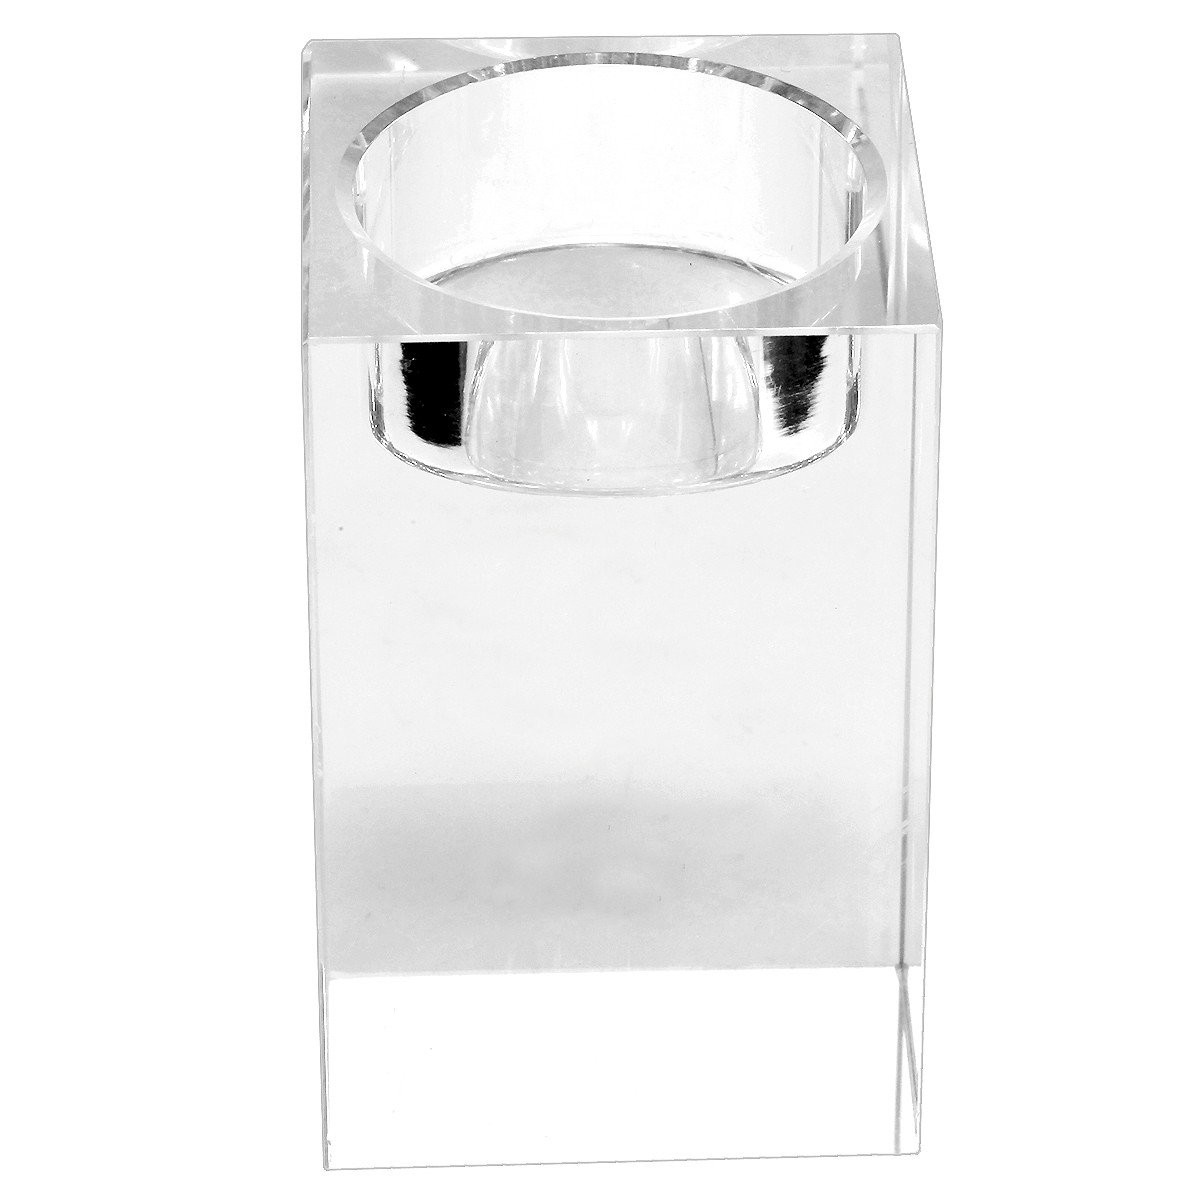 rockcloud Clear Glass Tea Light Candle Holders Candlestick Votive for Wedding Birthday Party /& Home Decoration